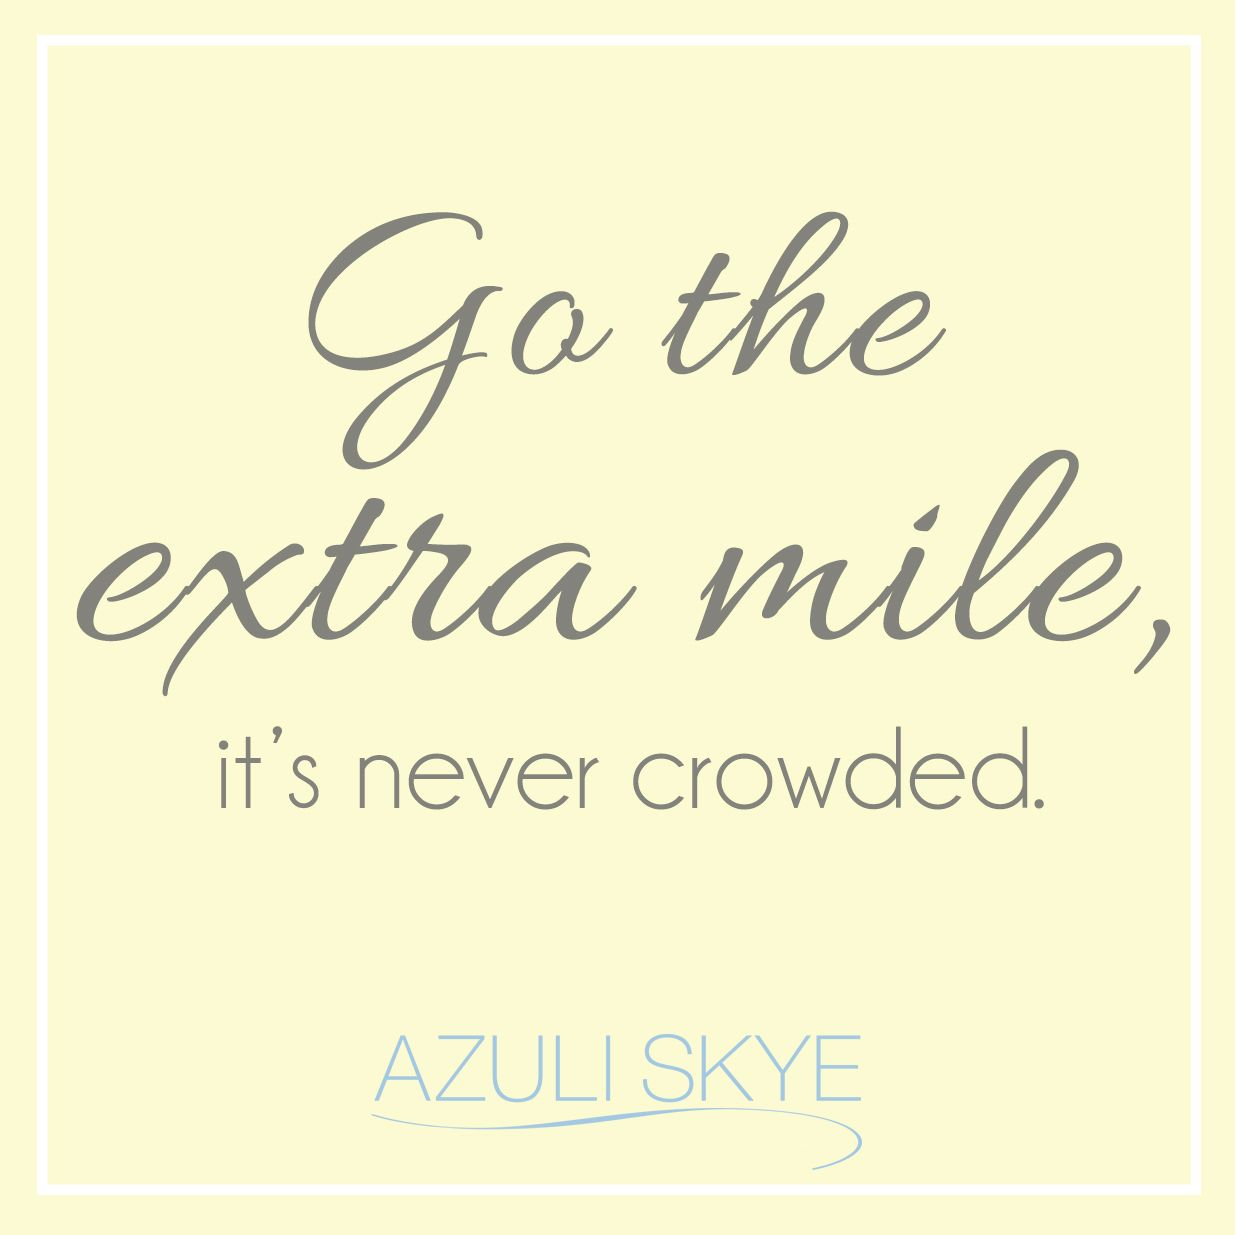 Go the extra mile, it's never crowded - AZULI SKYE Monday Motivation